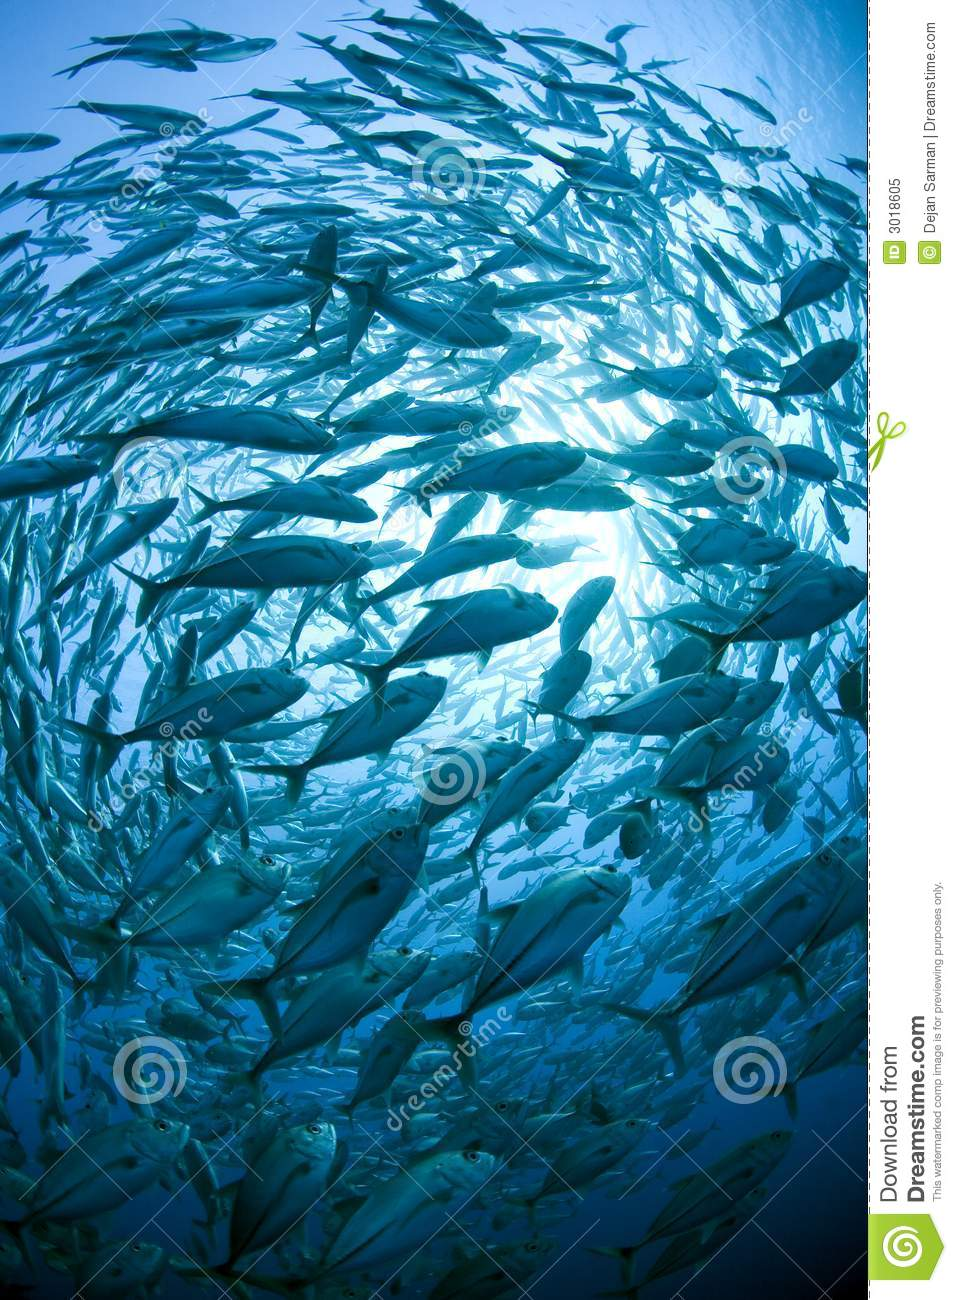 School of fish royalty free stock photo image 3018605 for Dream of fish swimming